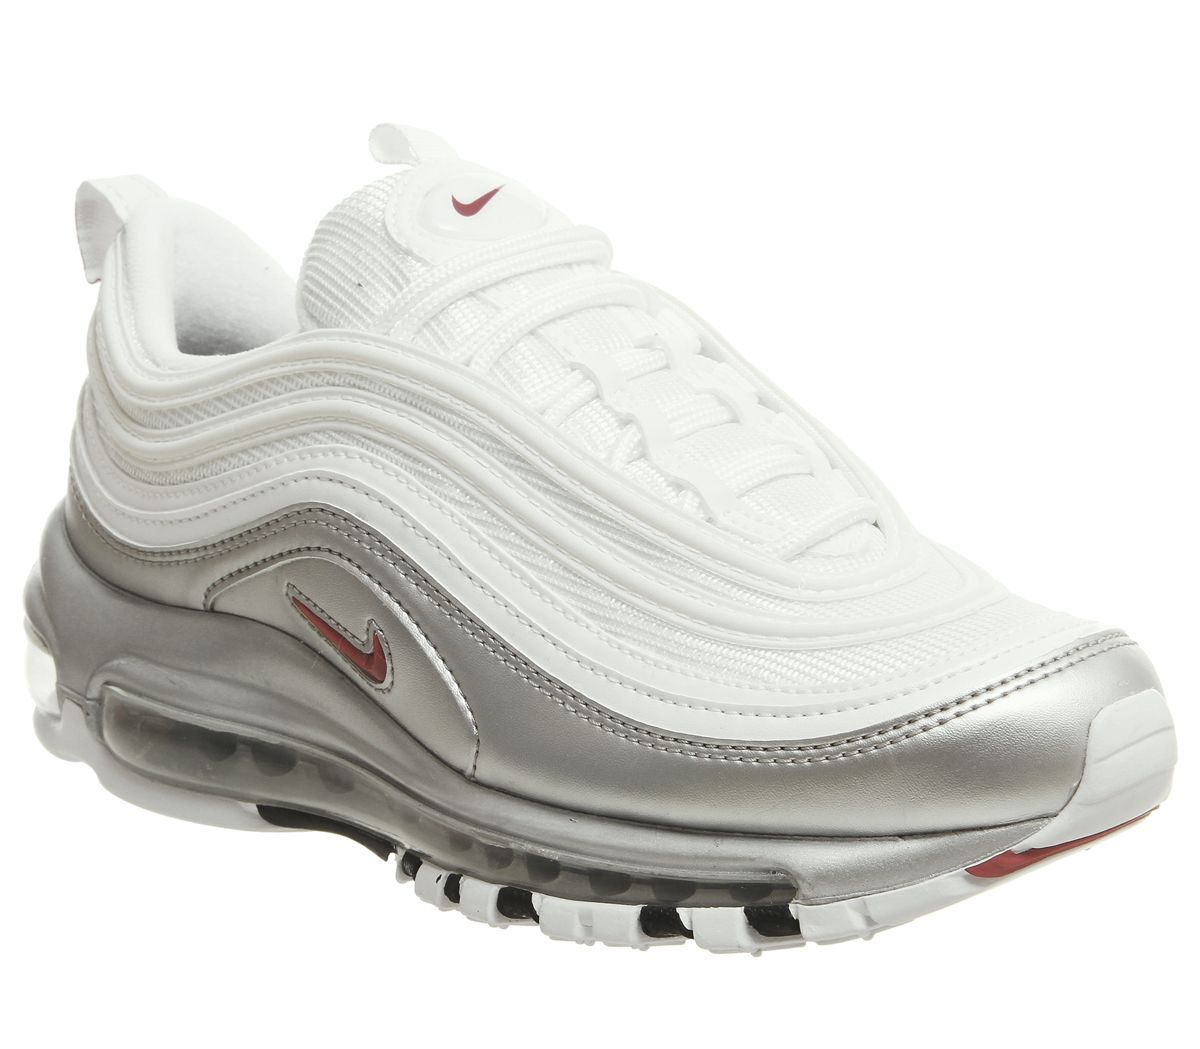 outlet store 1419f cd289 Nike Air Max 97 Trainers White Red Silver - Hers trainers